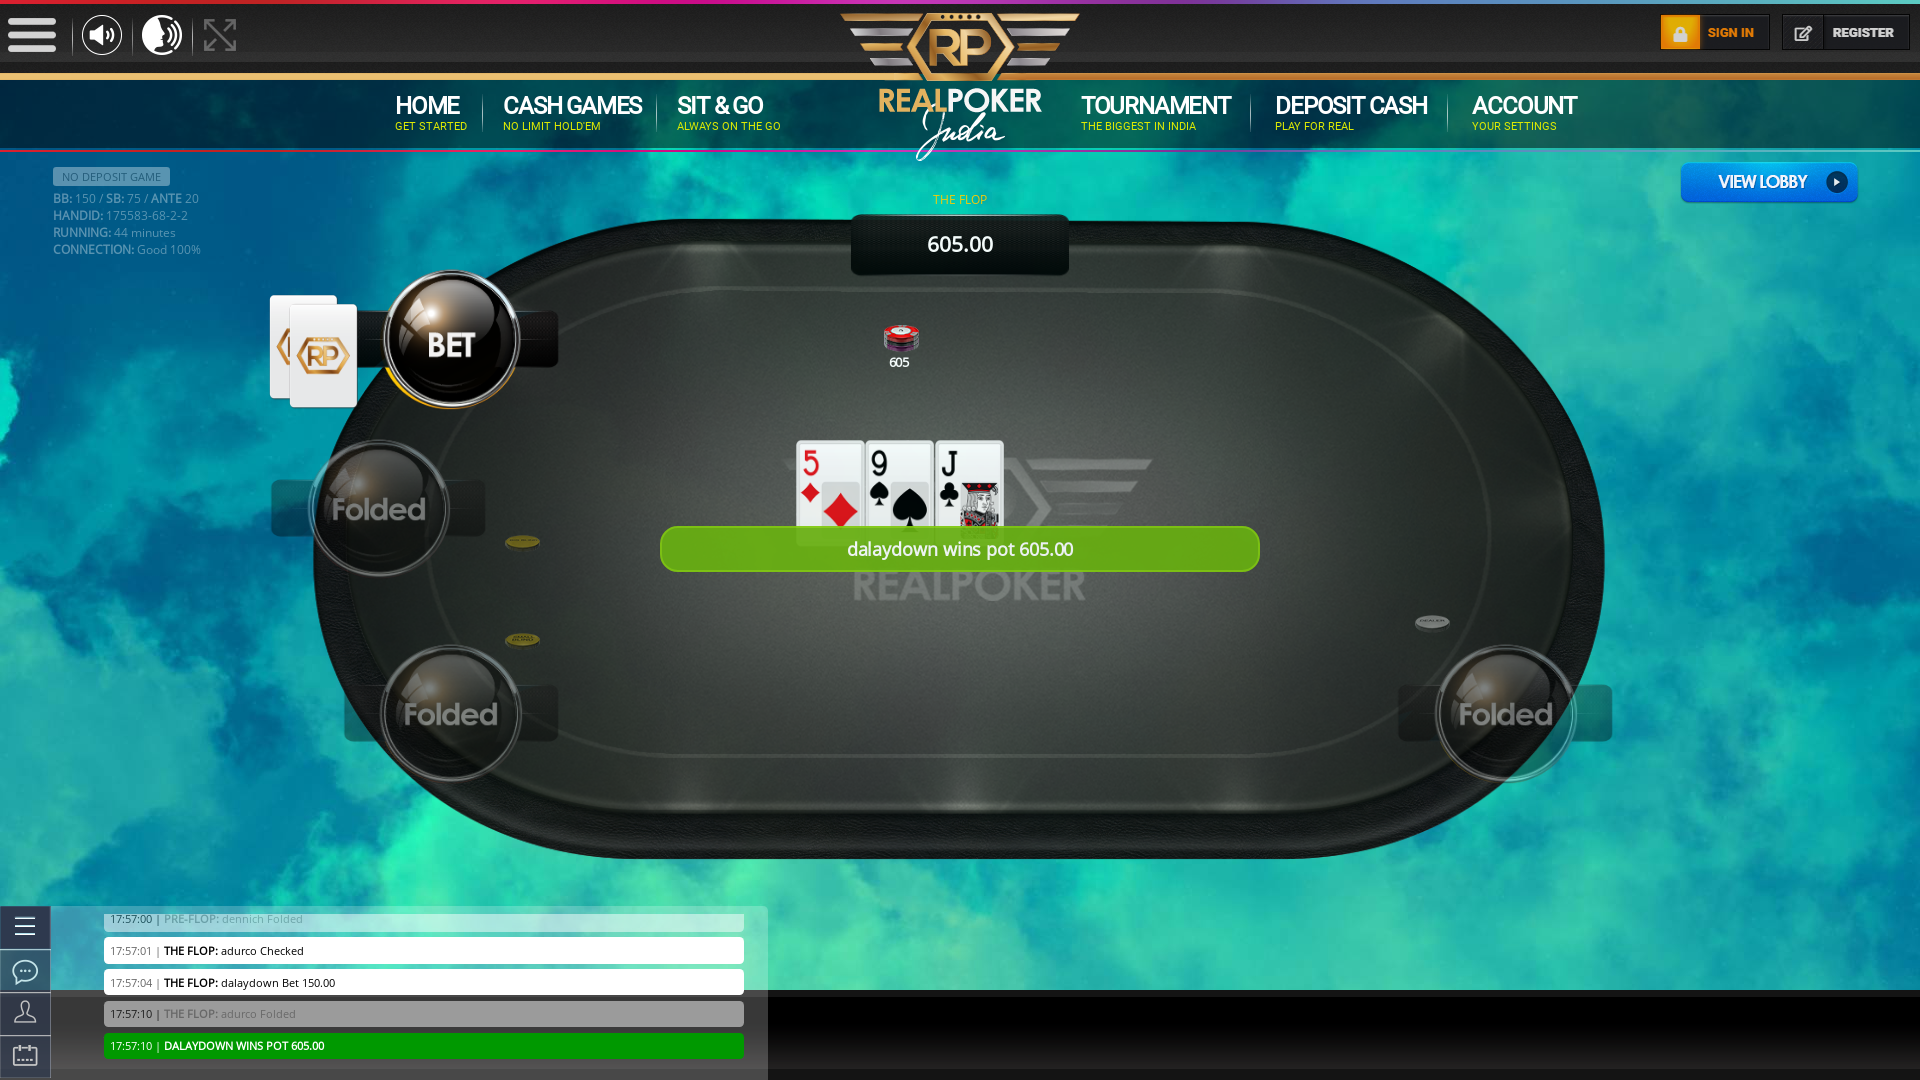 Indian online poker on a 10 player table in the 44th minute match up